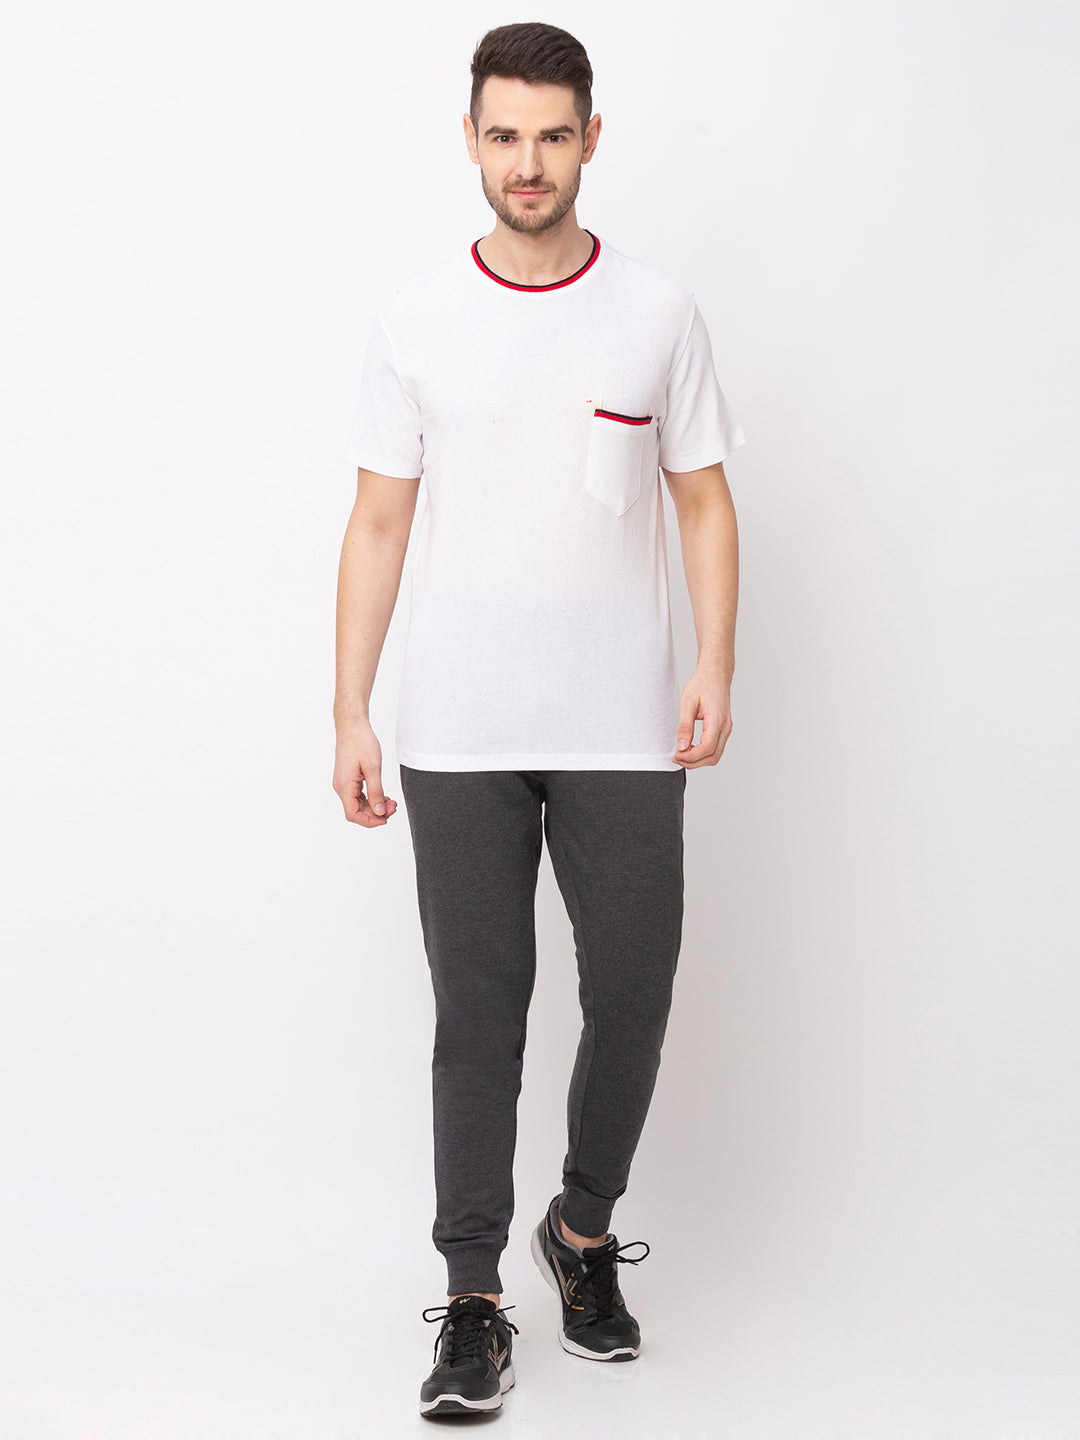 Globus White Solid T-Shirt-5